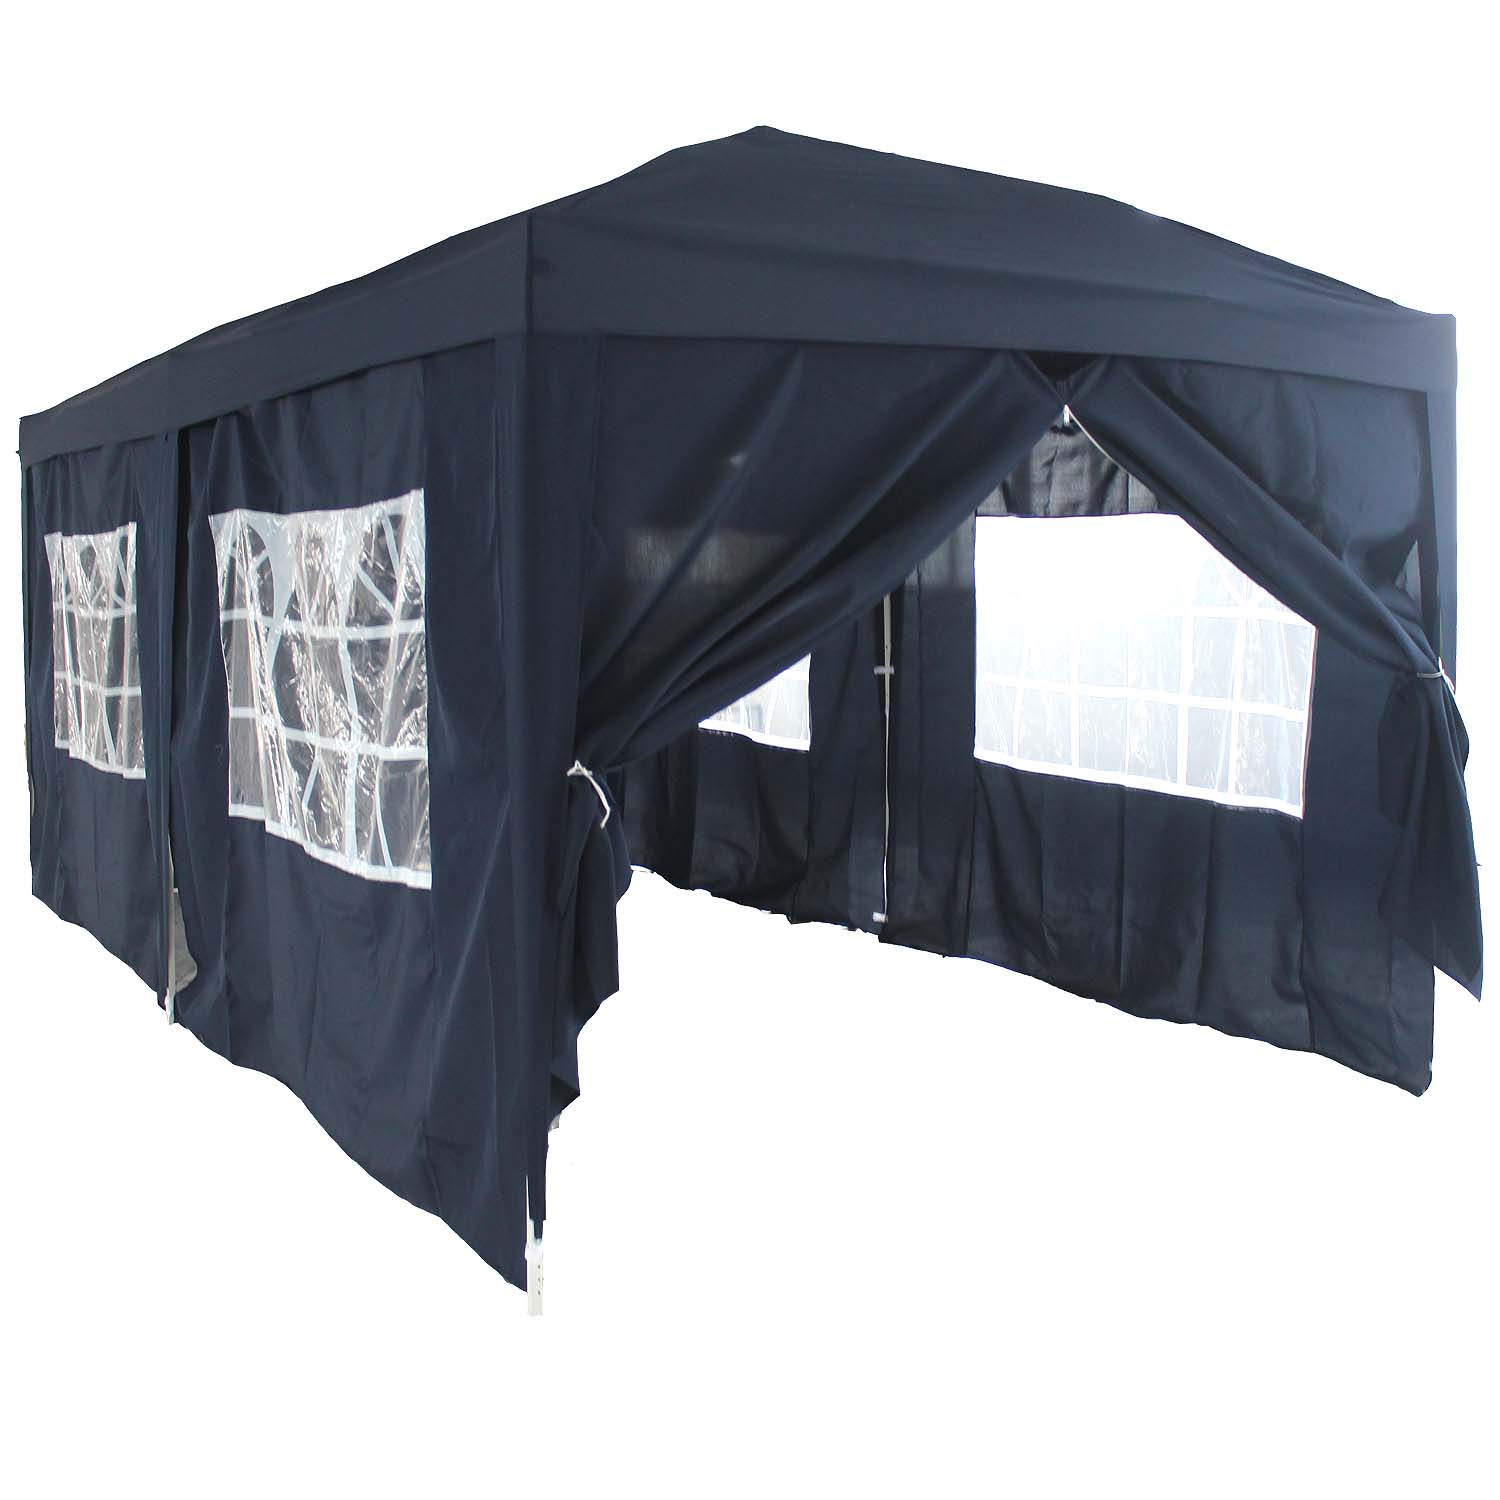 faltpavillon faltzelt partyzelt ruckzuck zelt 3x6m mit seitenteilen schwarz ebay. Black Bedroom Furniture Sets. Home Design Ideas